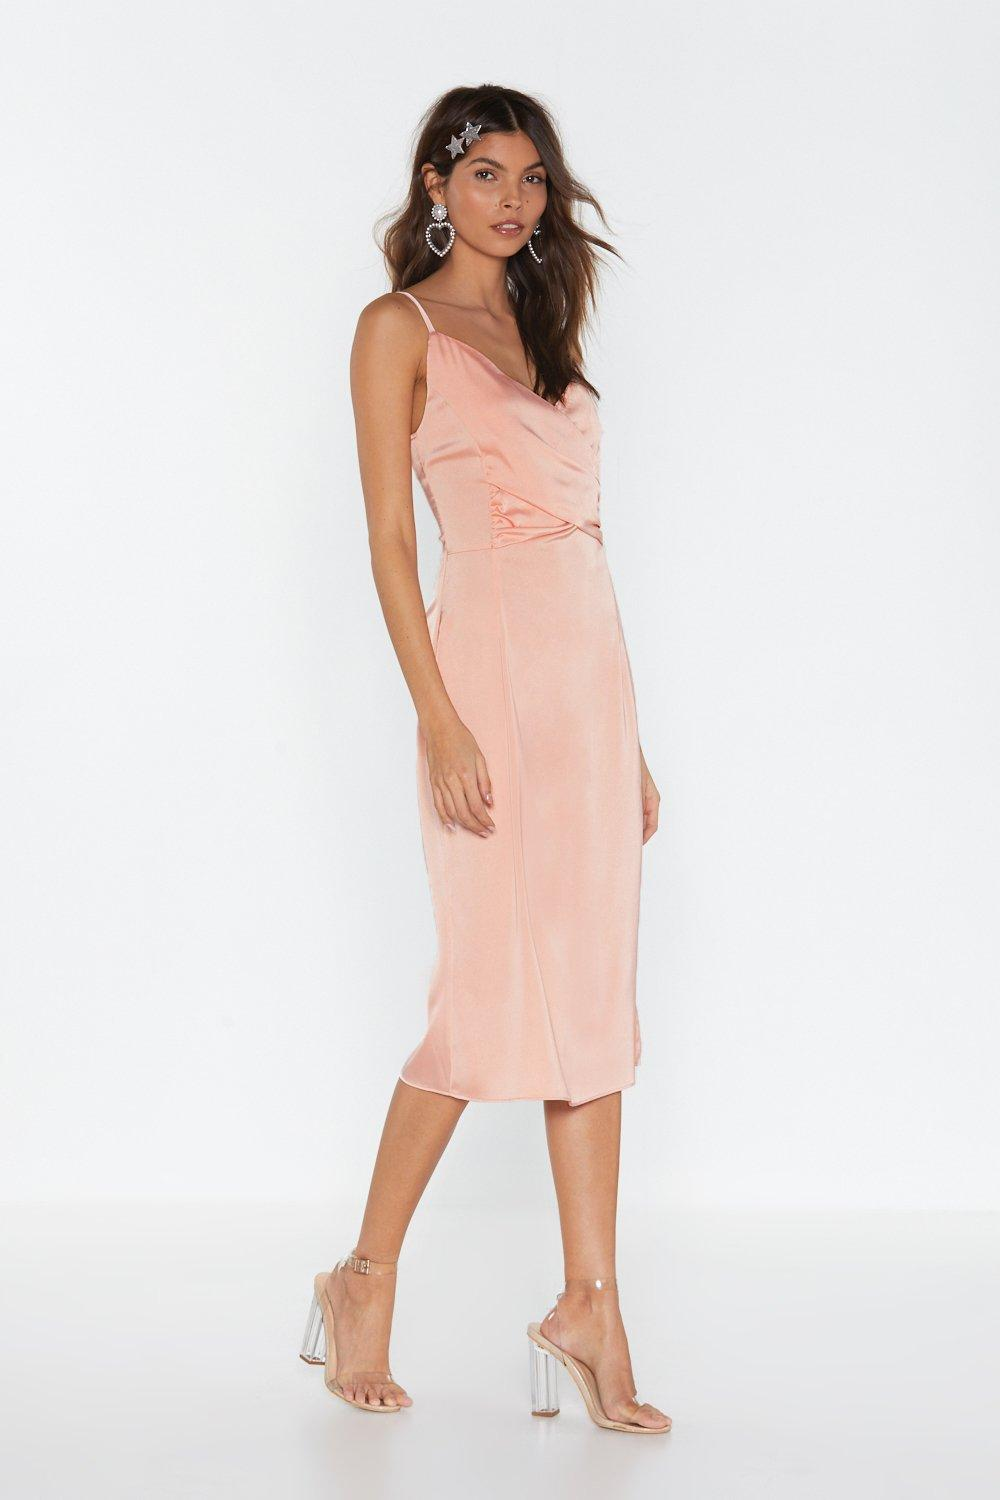 6bc7eaf630d Womens Blush Satin Strappy Wrap Detail Dress. Hover to zoom